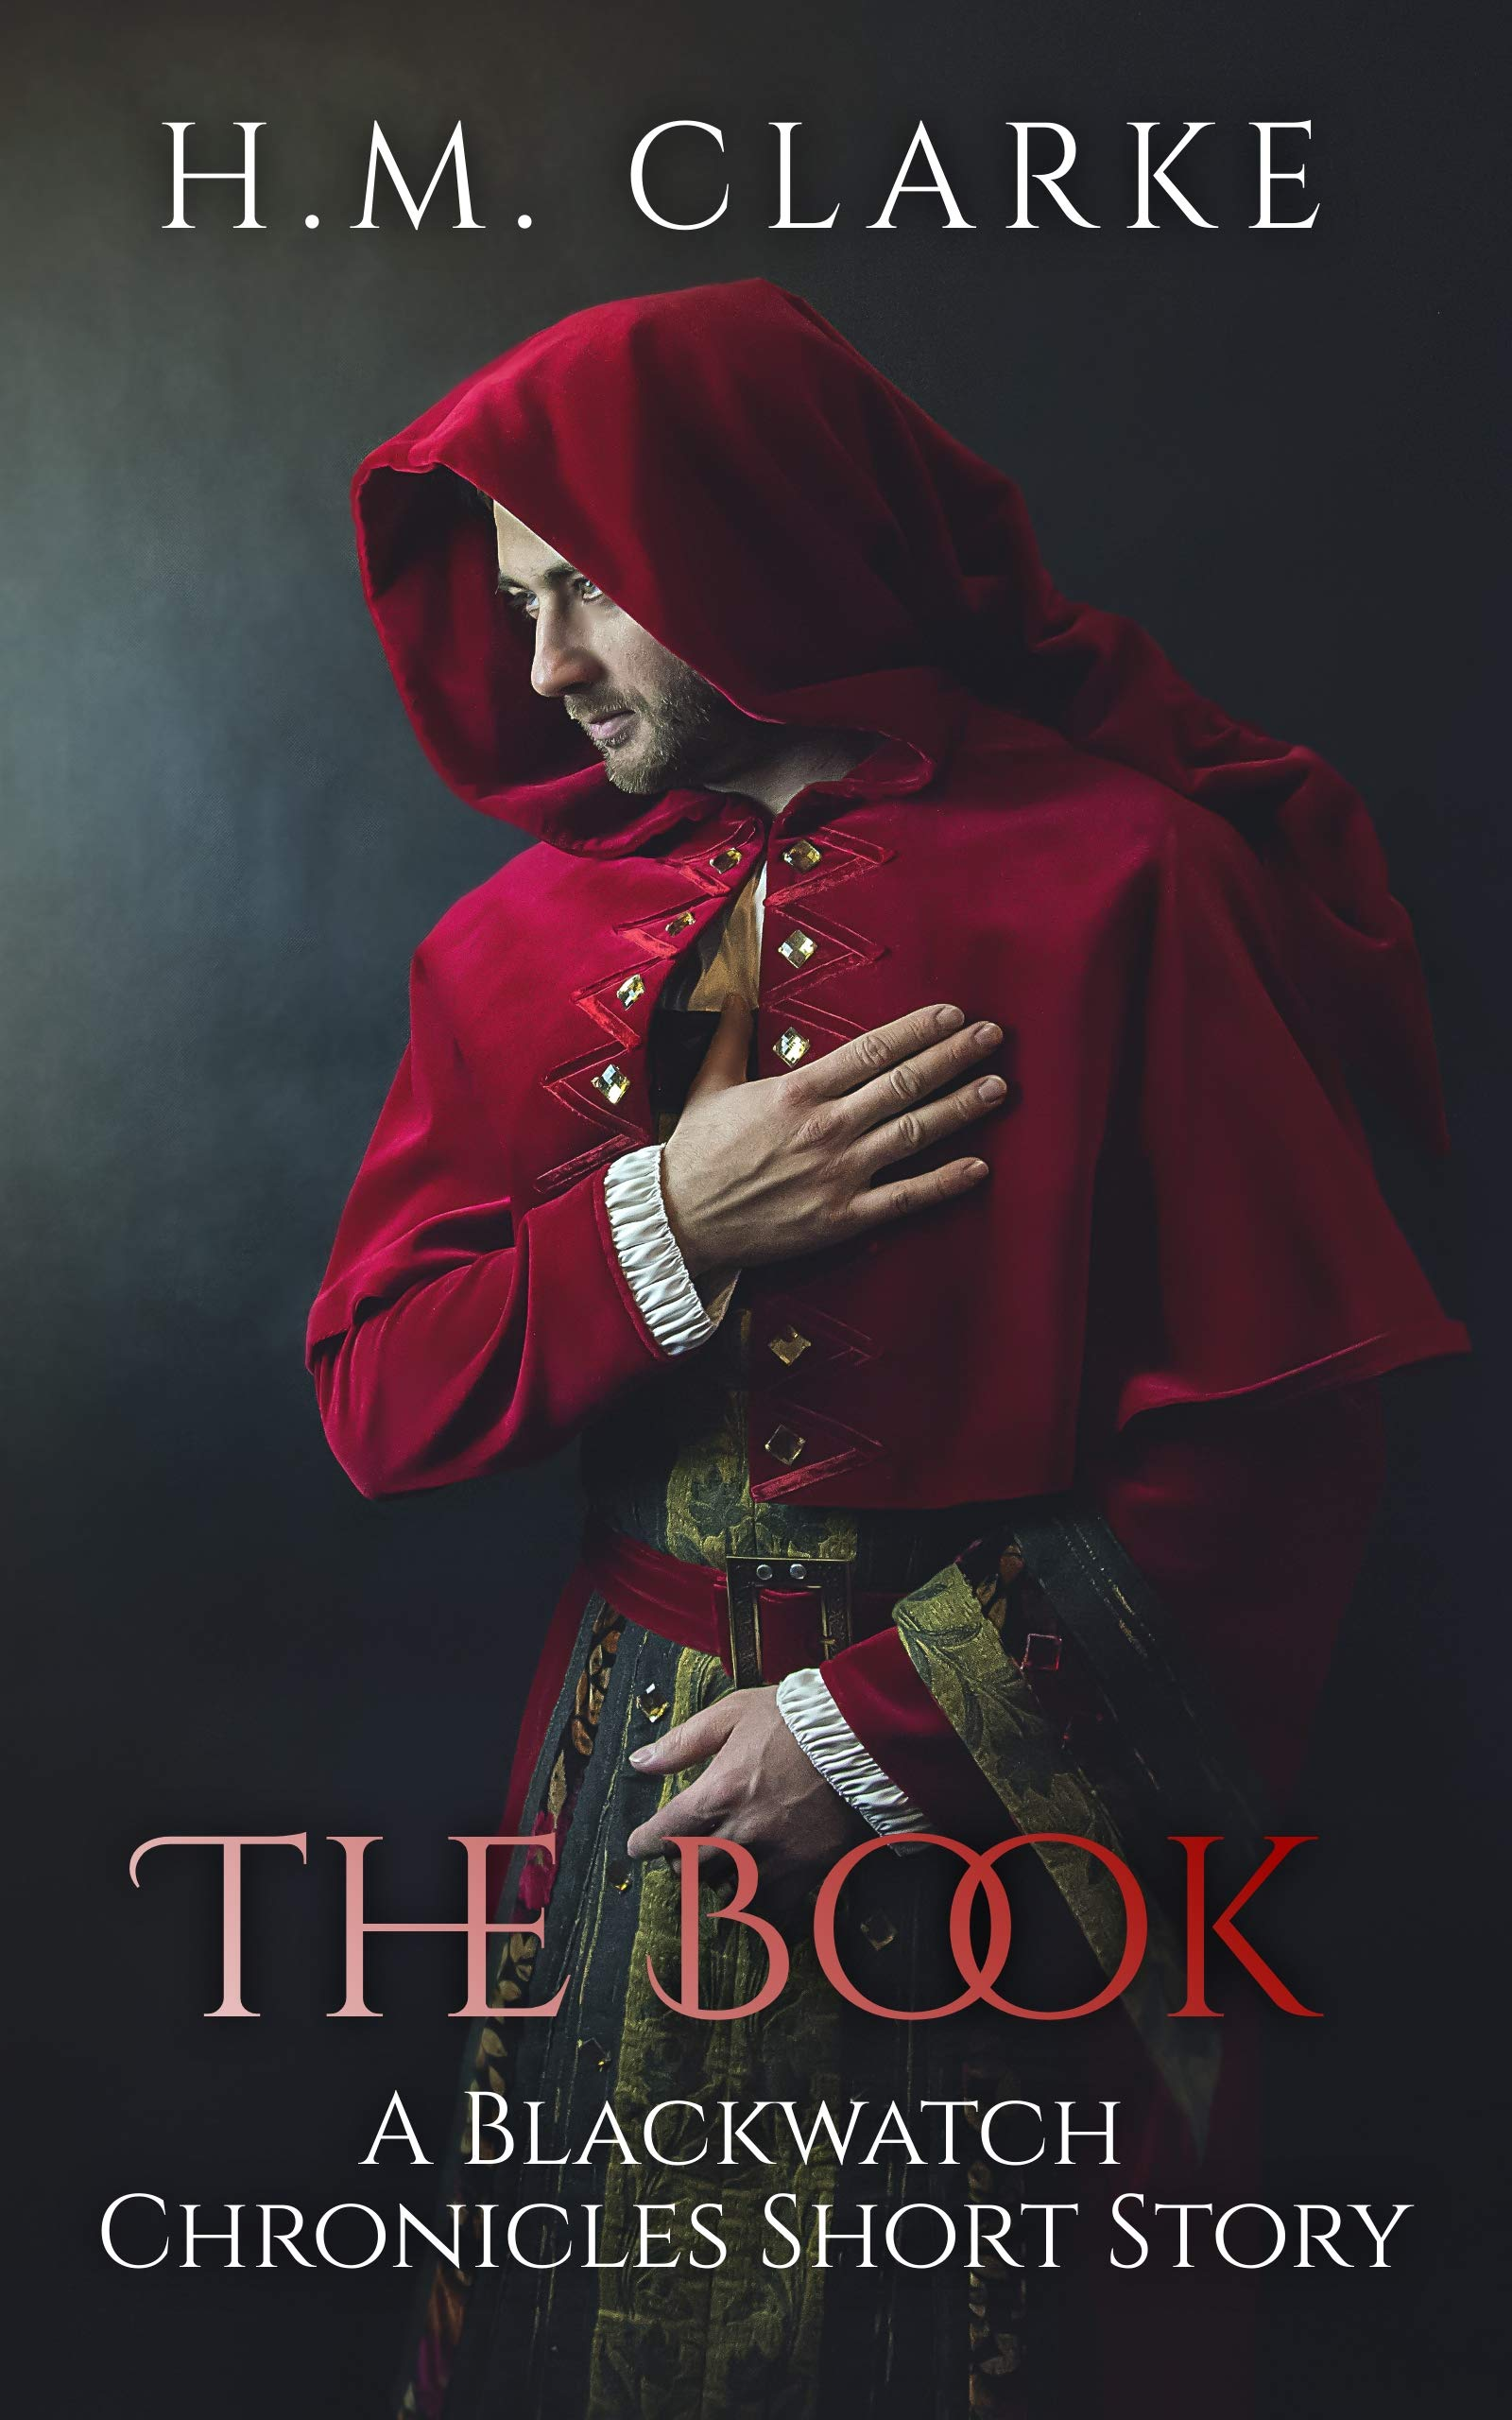 The Book: A Blackwatch Chronicles Short Story